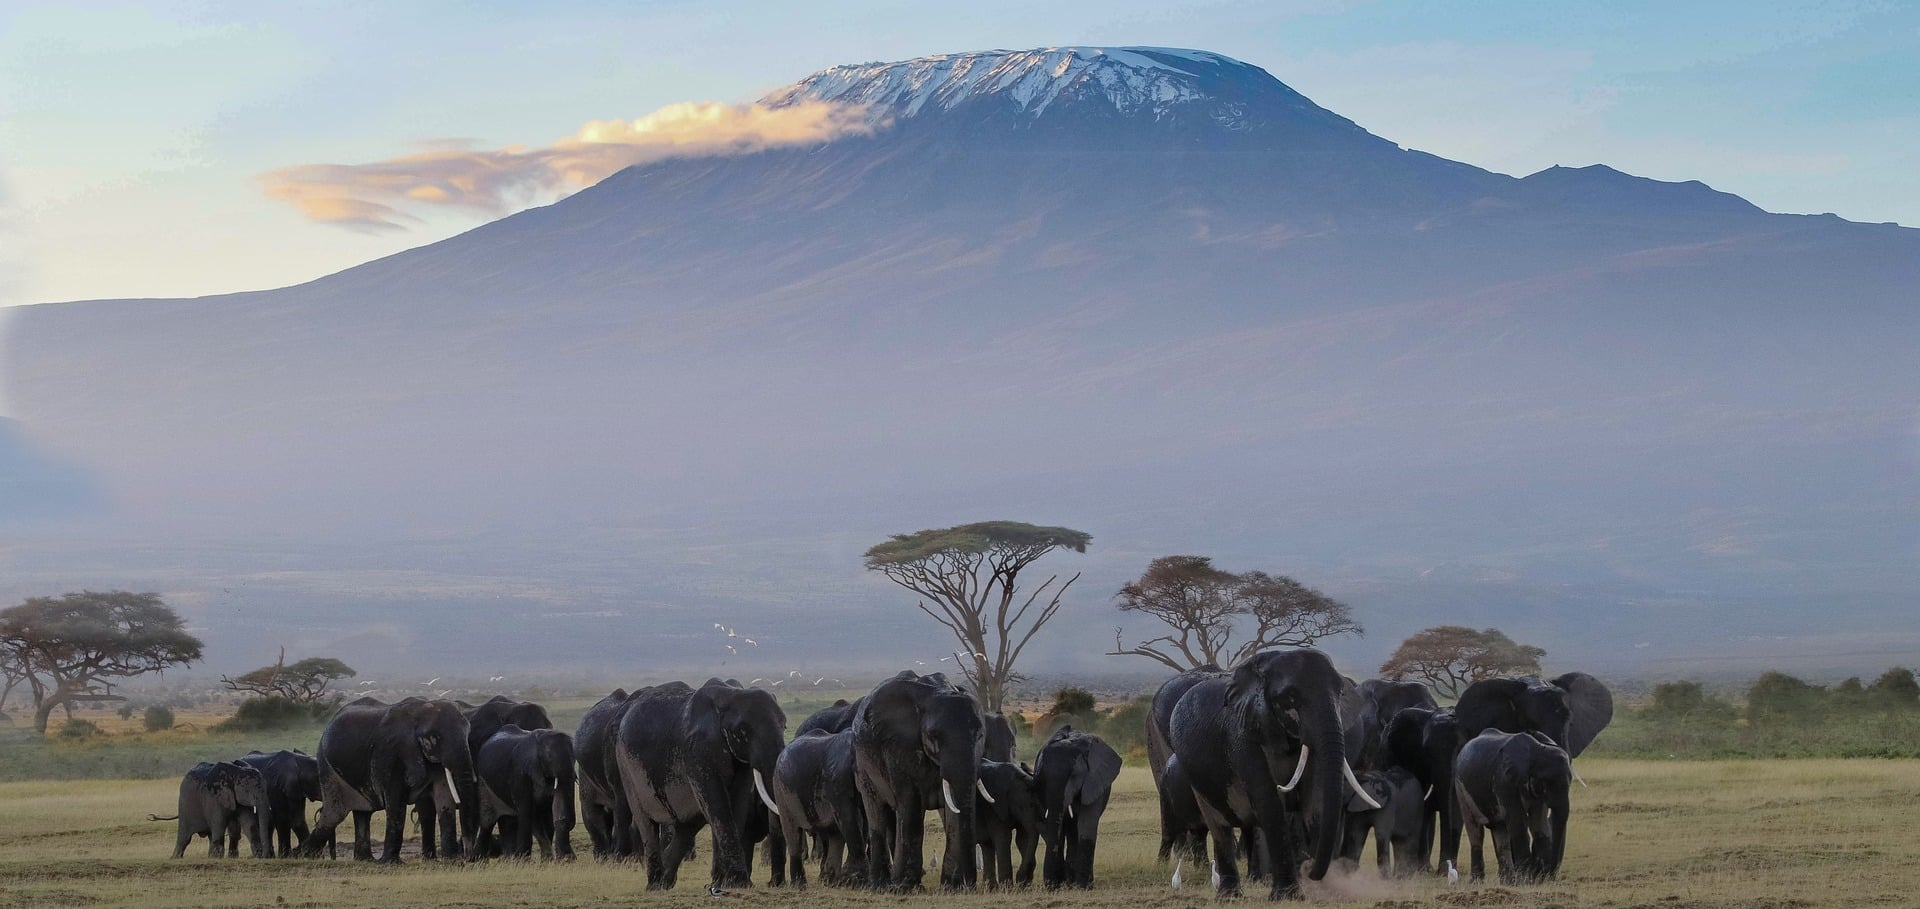 When to Visit Mount Kilimanjaro to See Snow